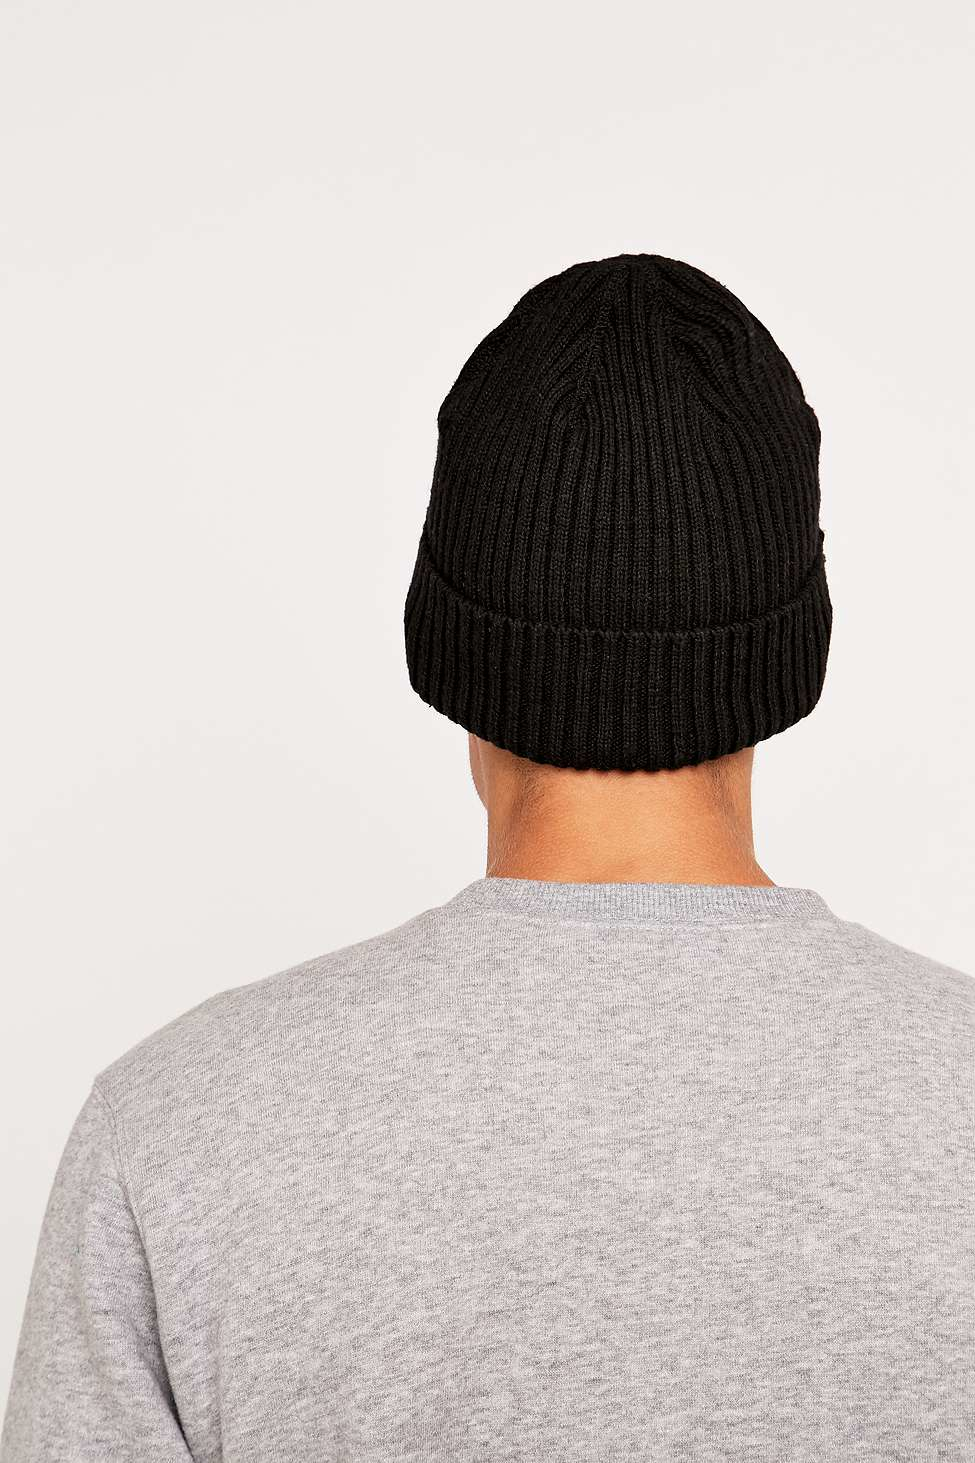 5c3a72fd484 Herschel Supply Co. Cast Black Ribbed Beanie in Black for Men - Lyst